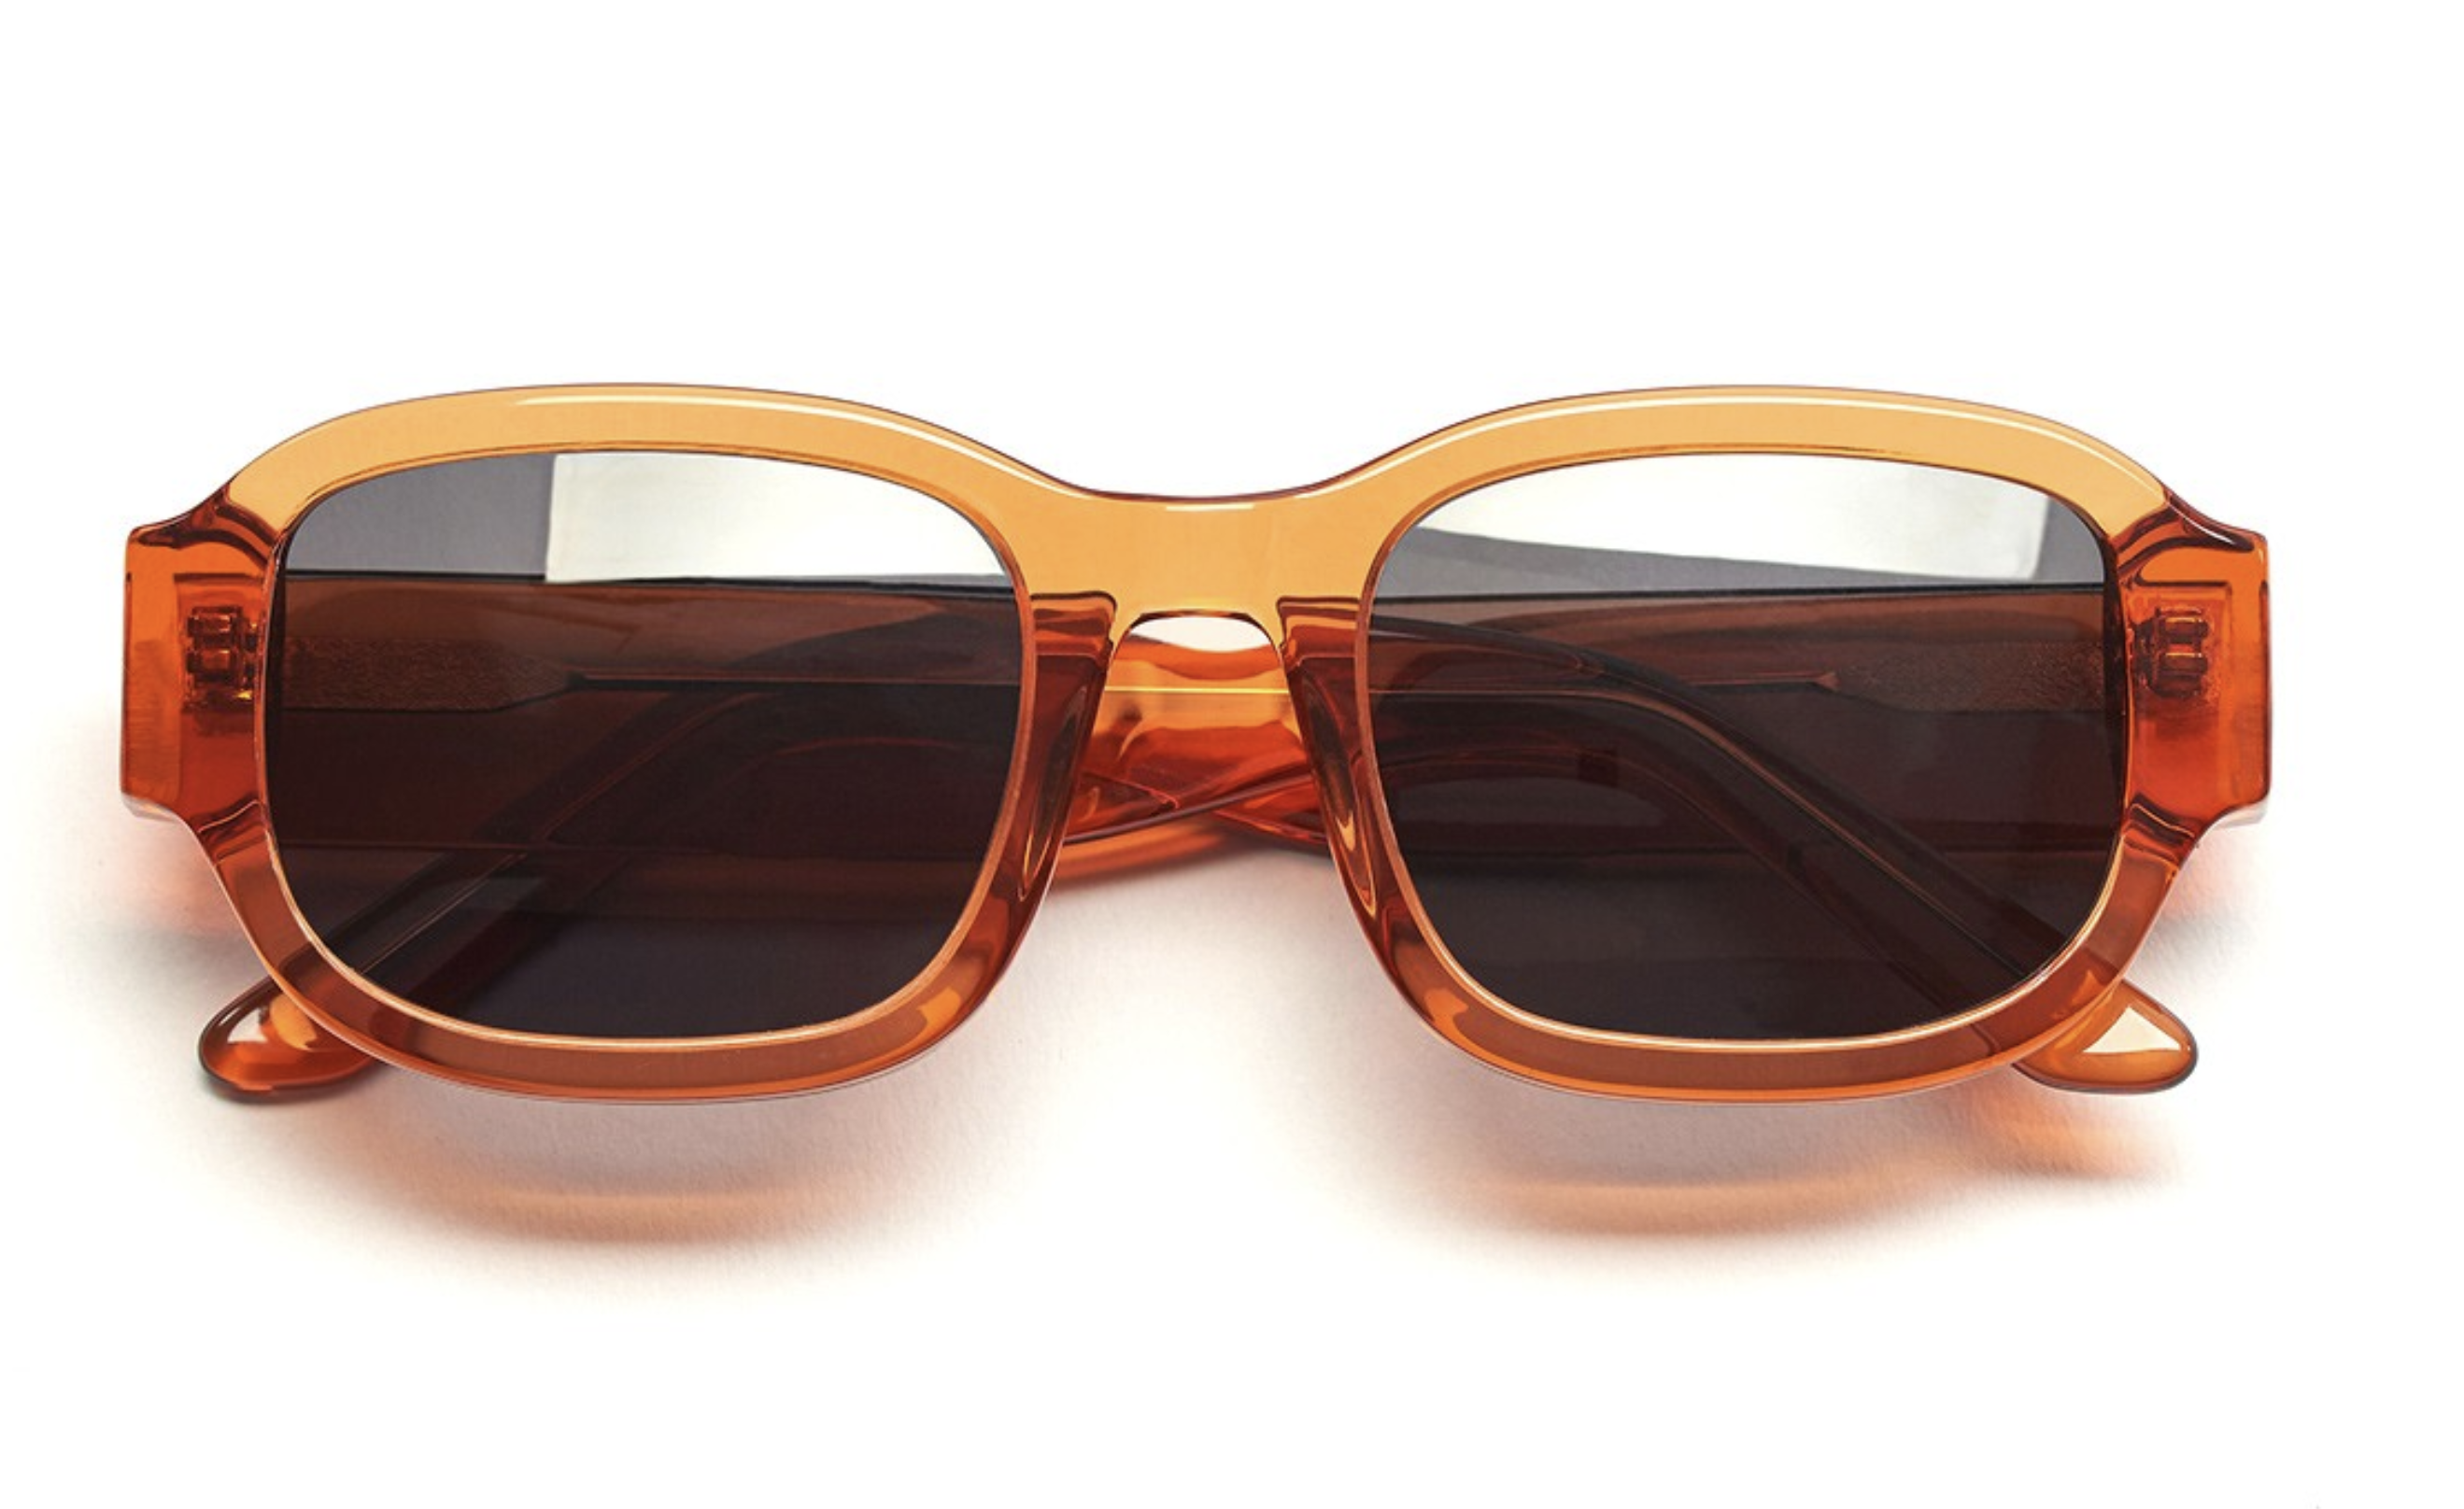 ace-and-tate-sunglasses-ss-21-edit